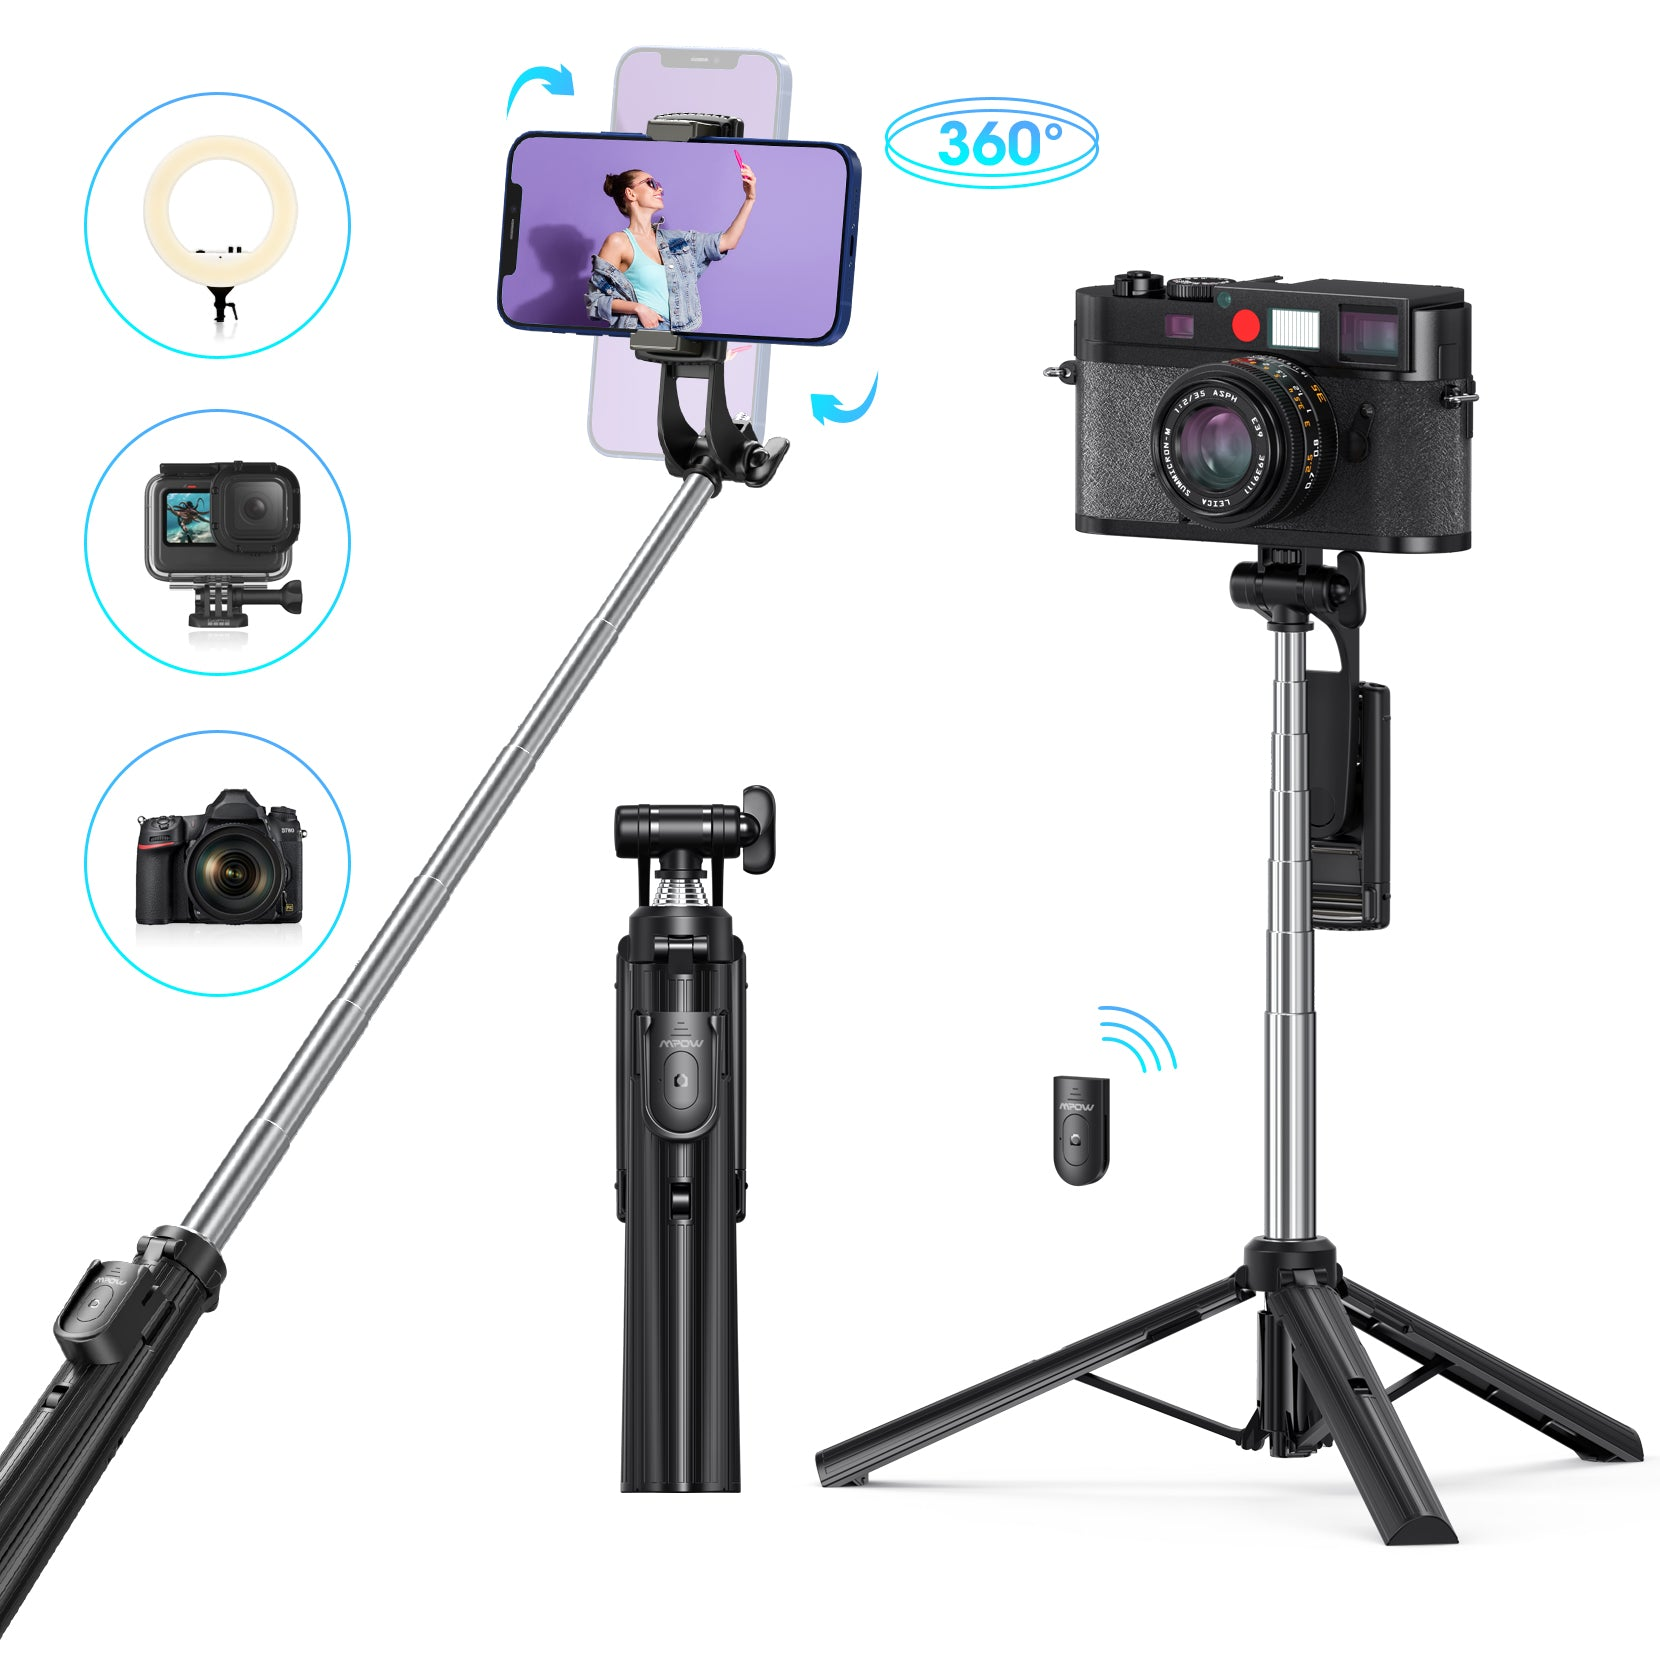 Mpow PA231A Selfie Stick Tripod Stand with Stable Design and Remote